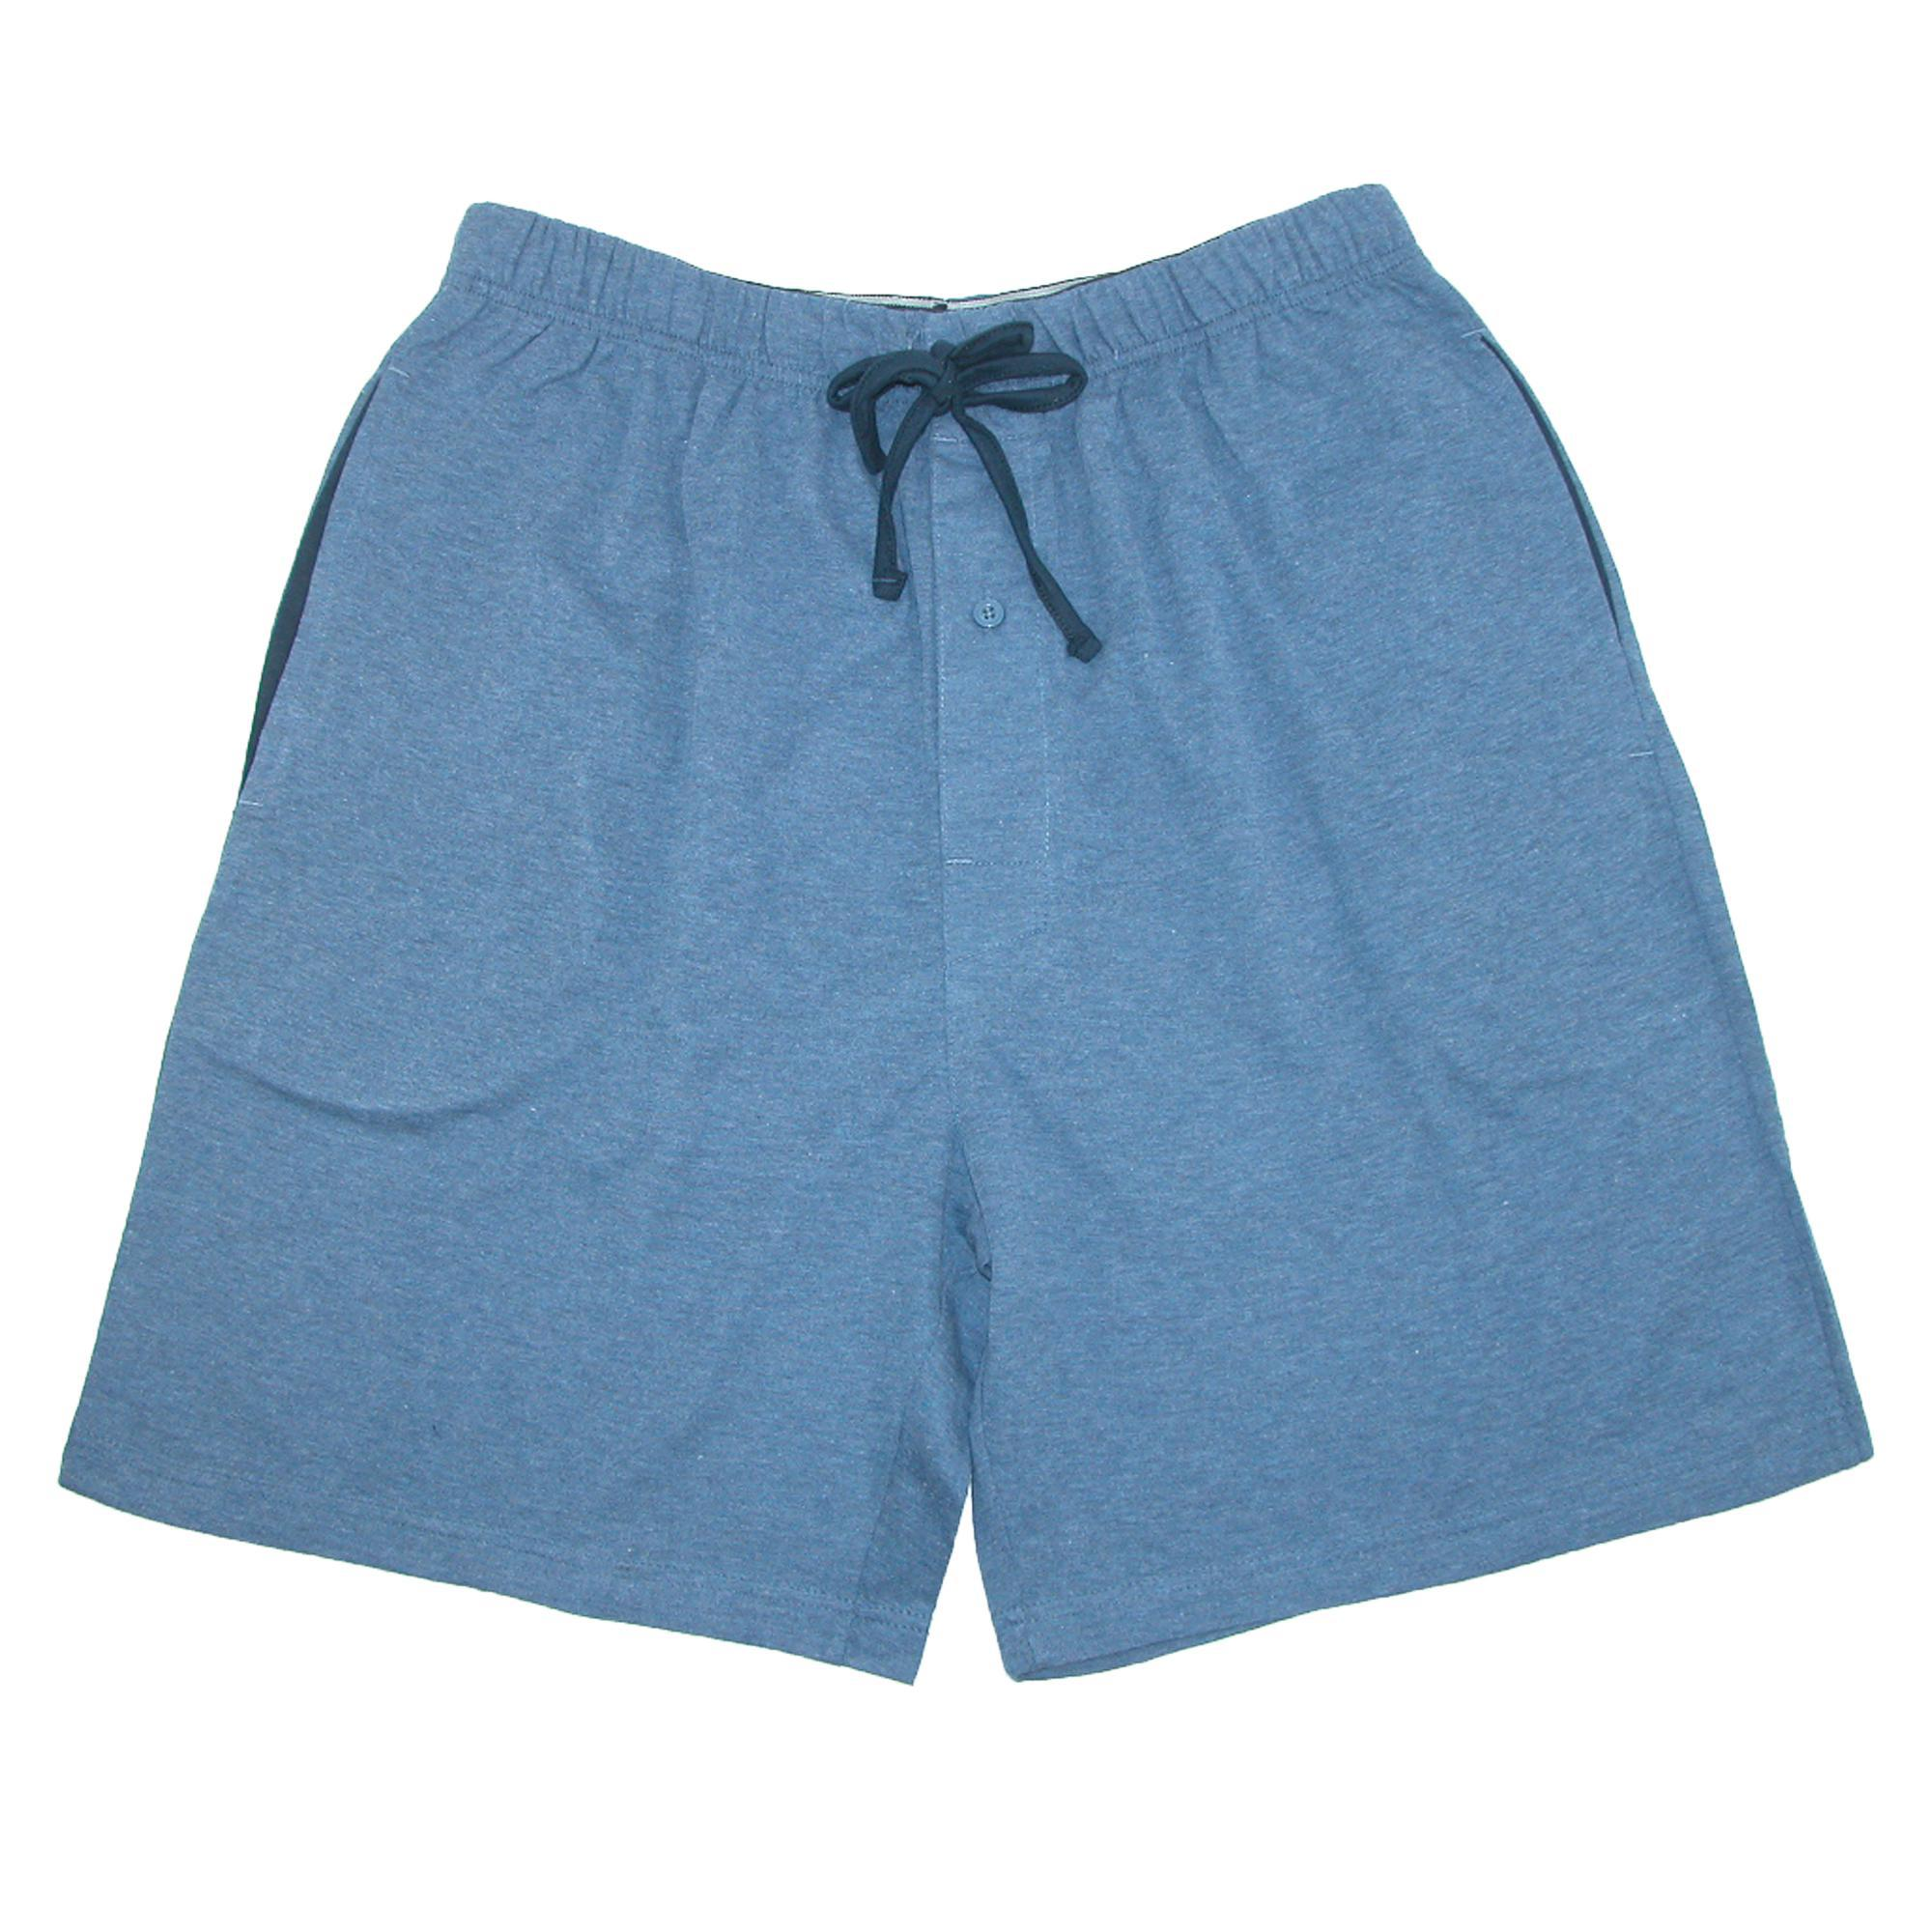 Hanes Men s Big and Tall Knit Sleep Shorts 2c70bebfd